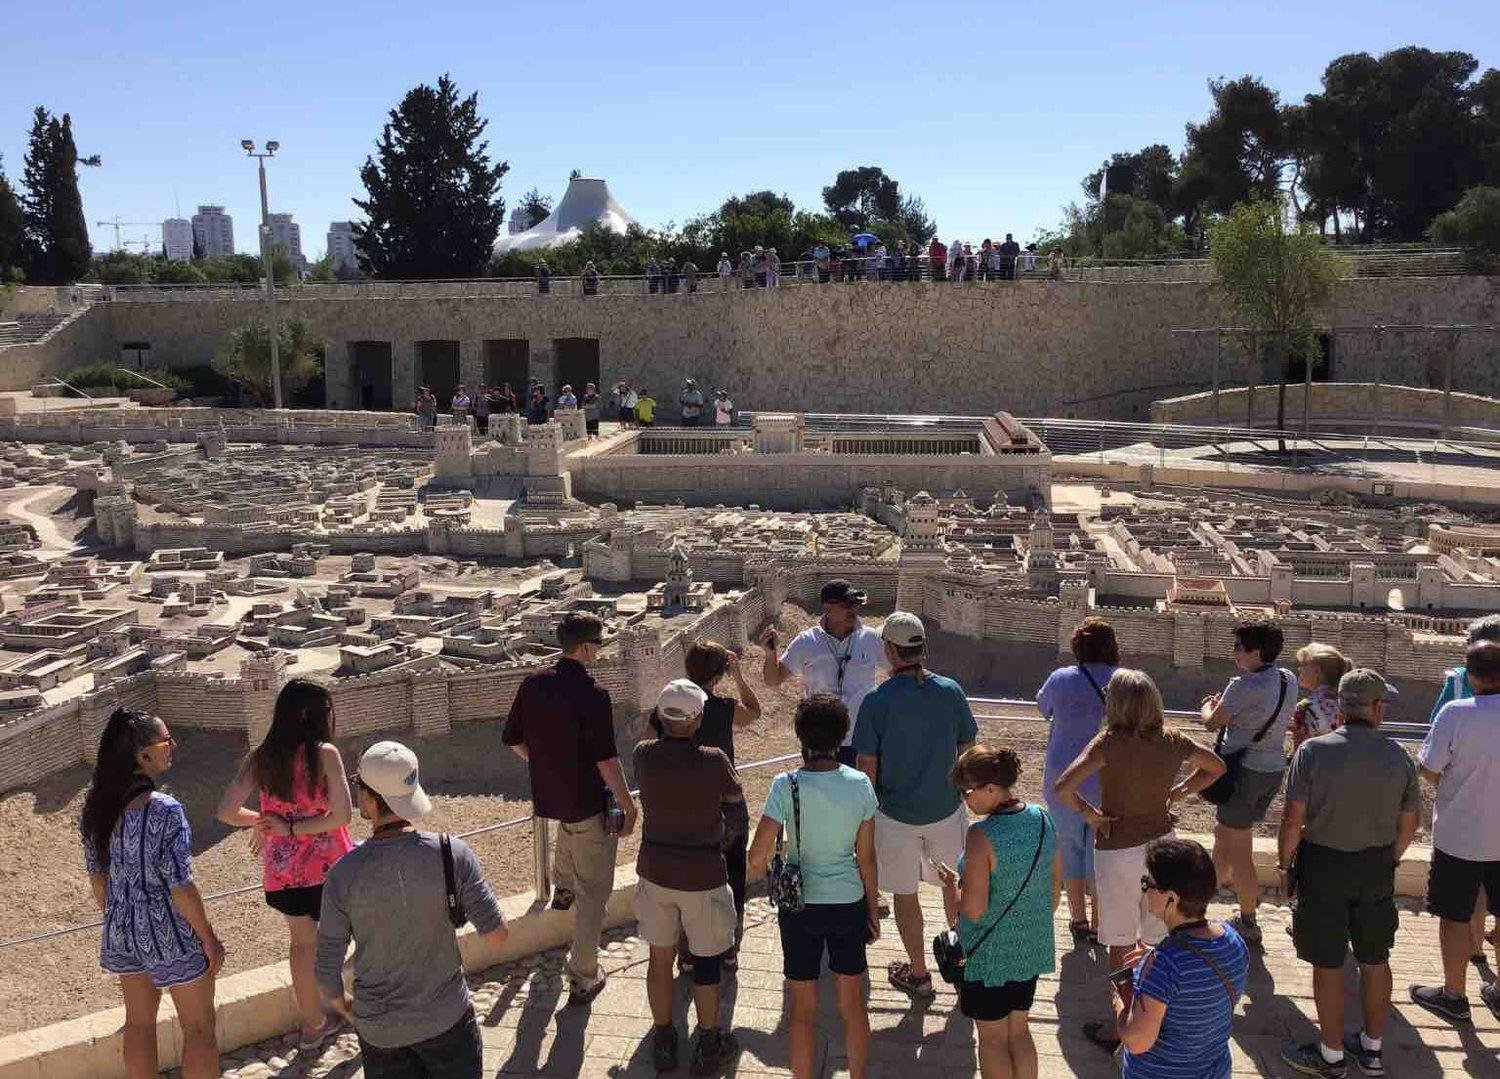 The Israel Museum complex includes this extremely impressive scale model of Jerusalem in the Second Temple Period.